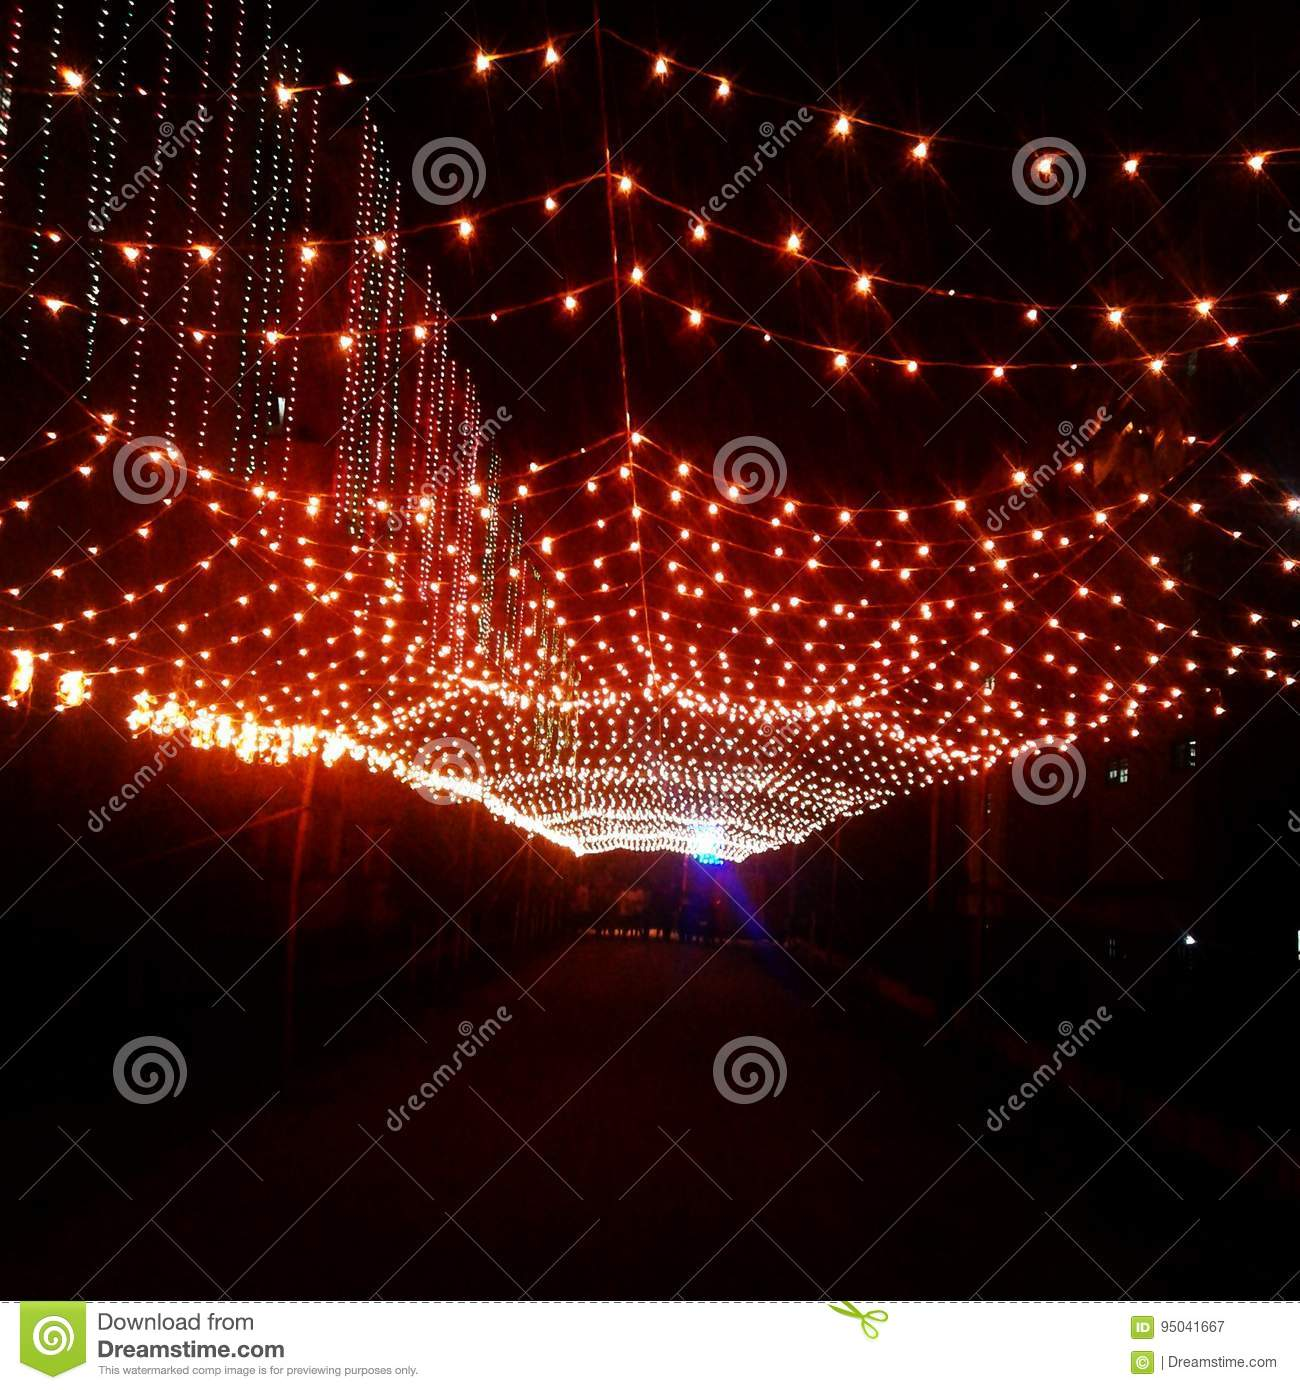 Light Decoration Diwali Lights Will Guide You Beautiful Diwali Decorations Stock